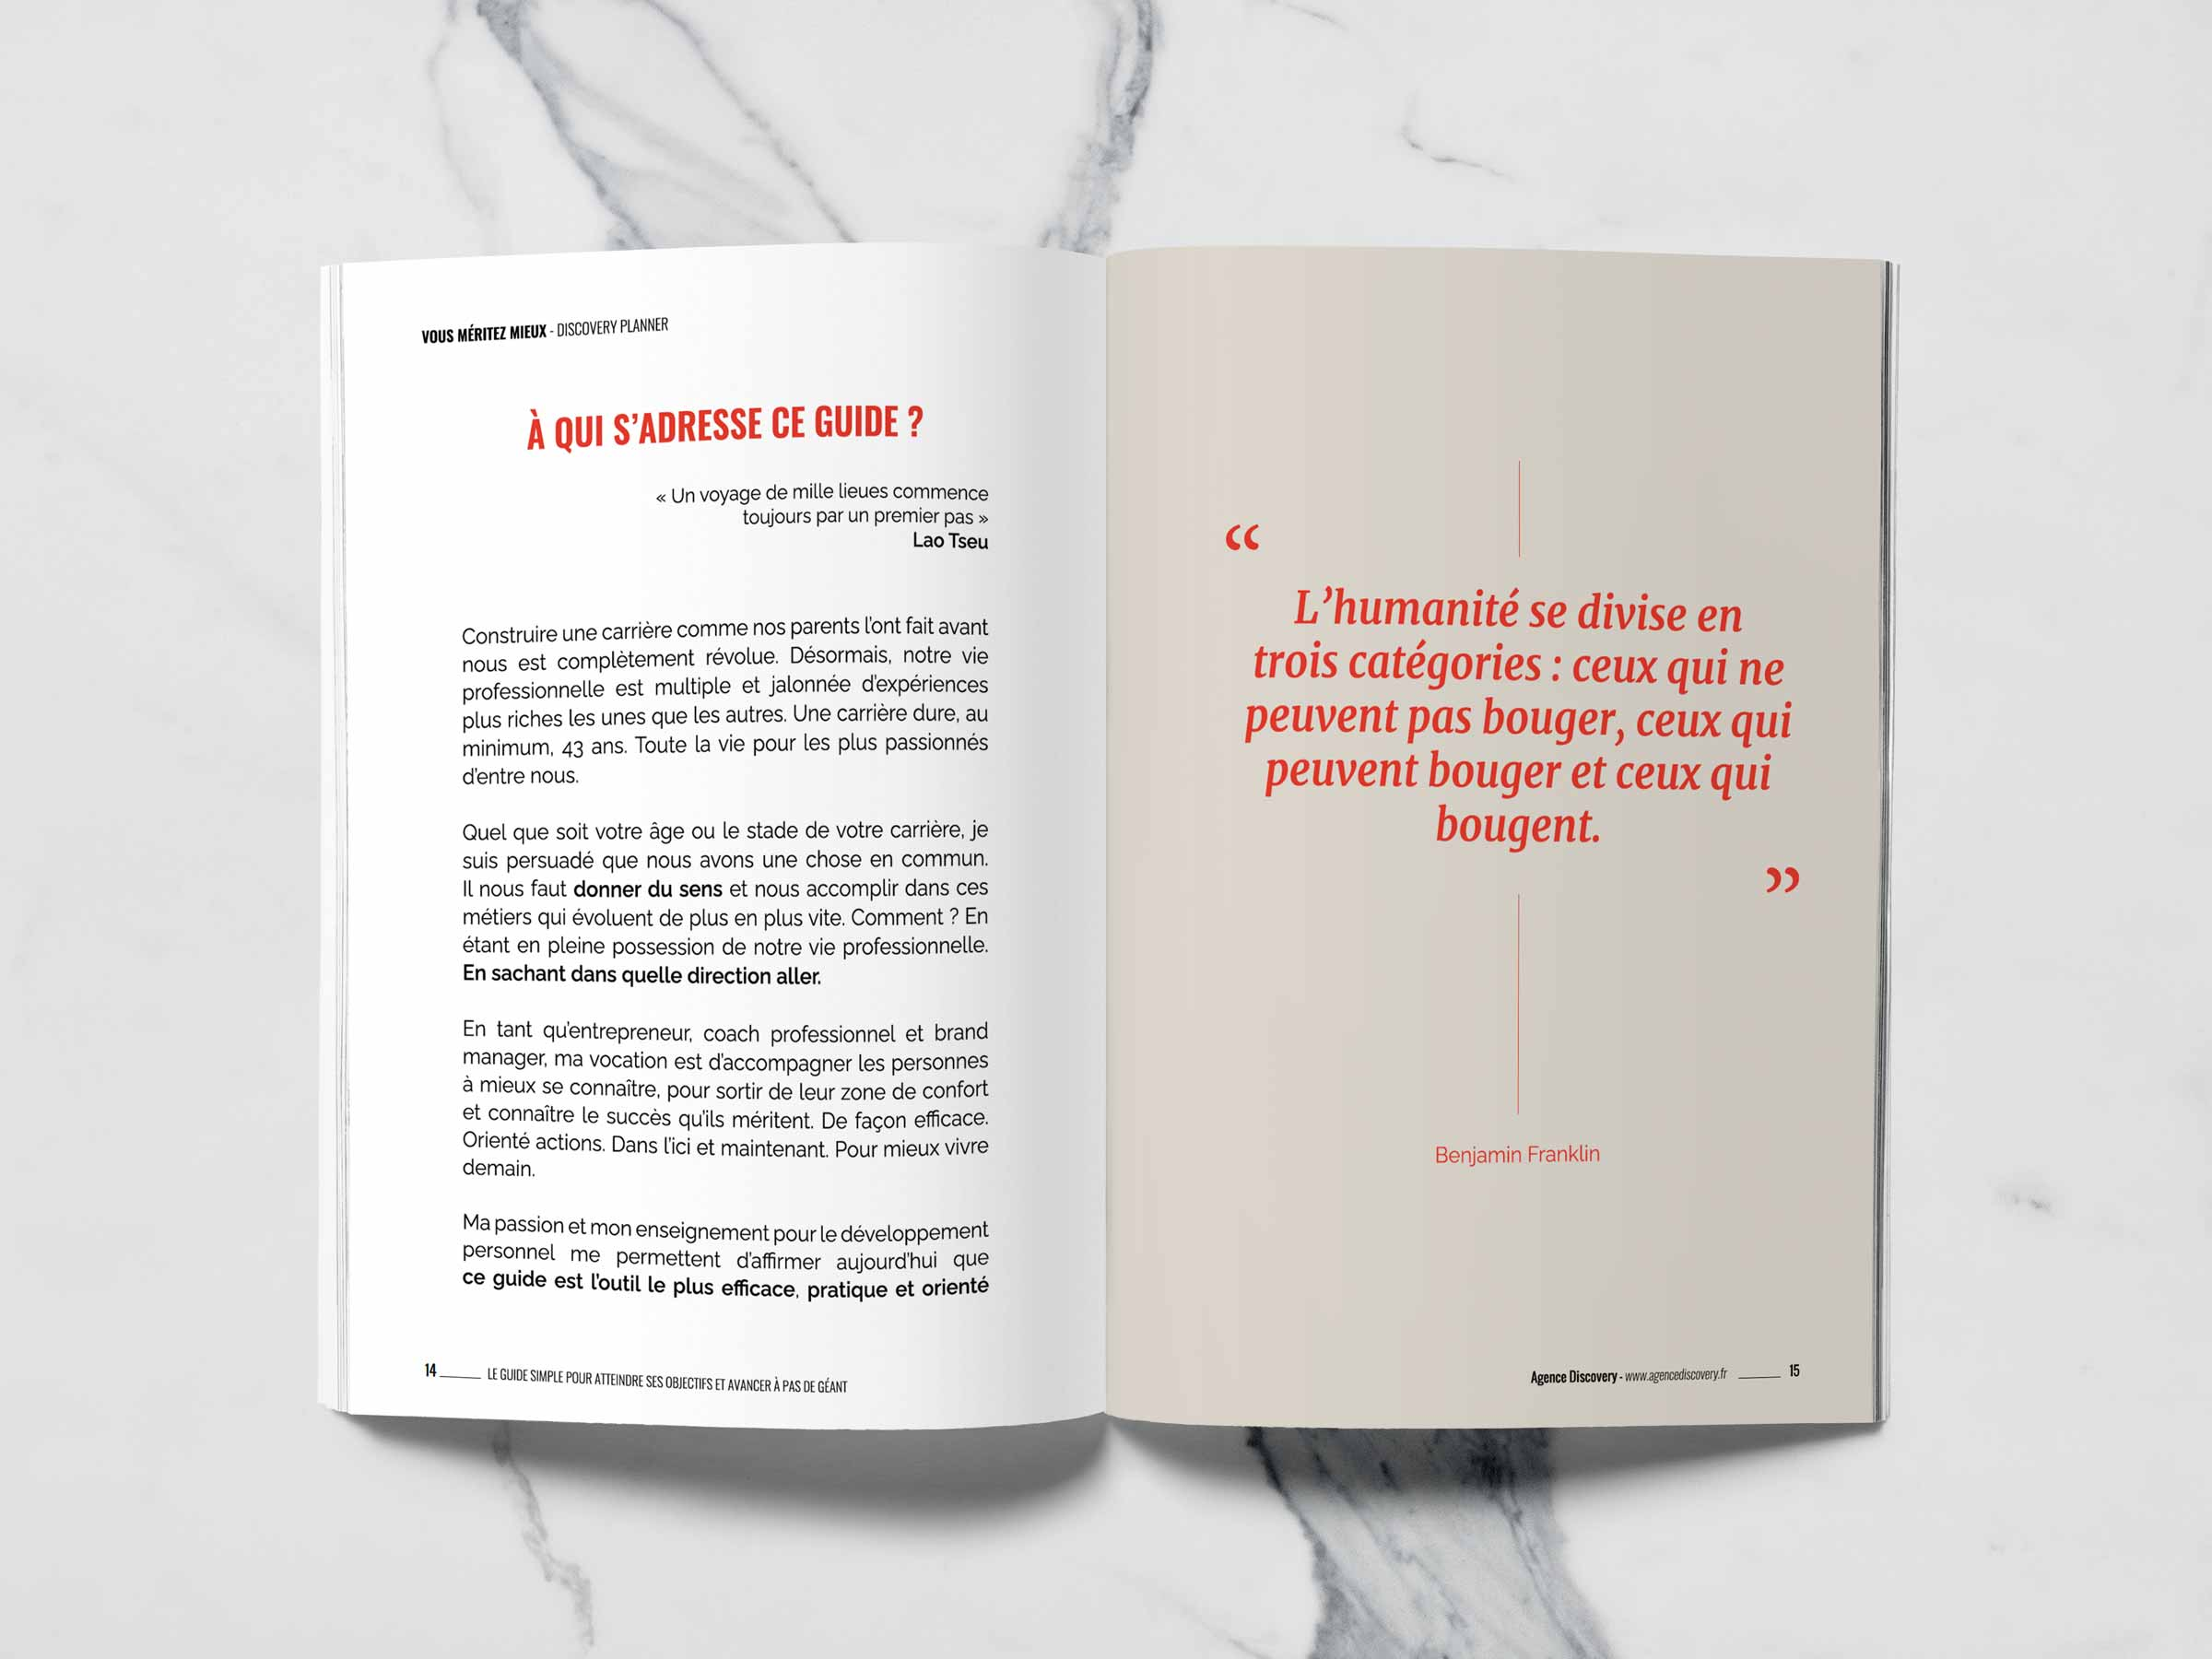 Discovery Planner - Le guide simple pour atteindre ses objectifs professionnels et personnels - Agence Discovery